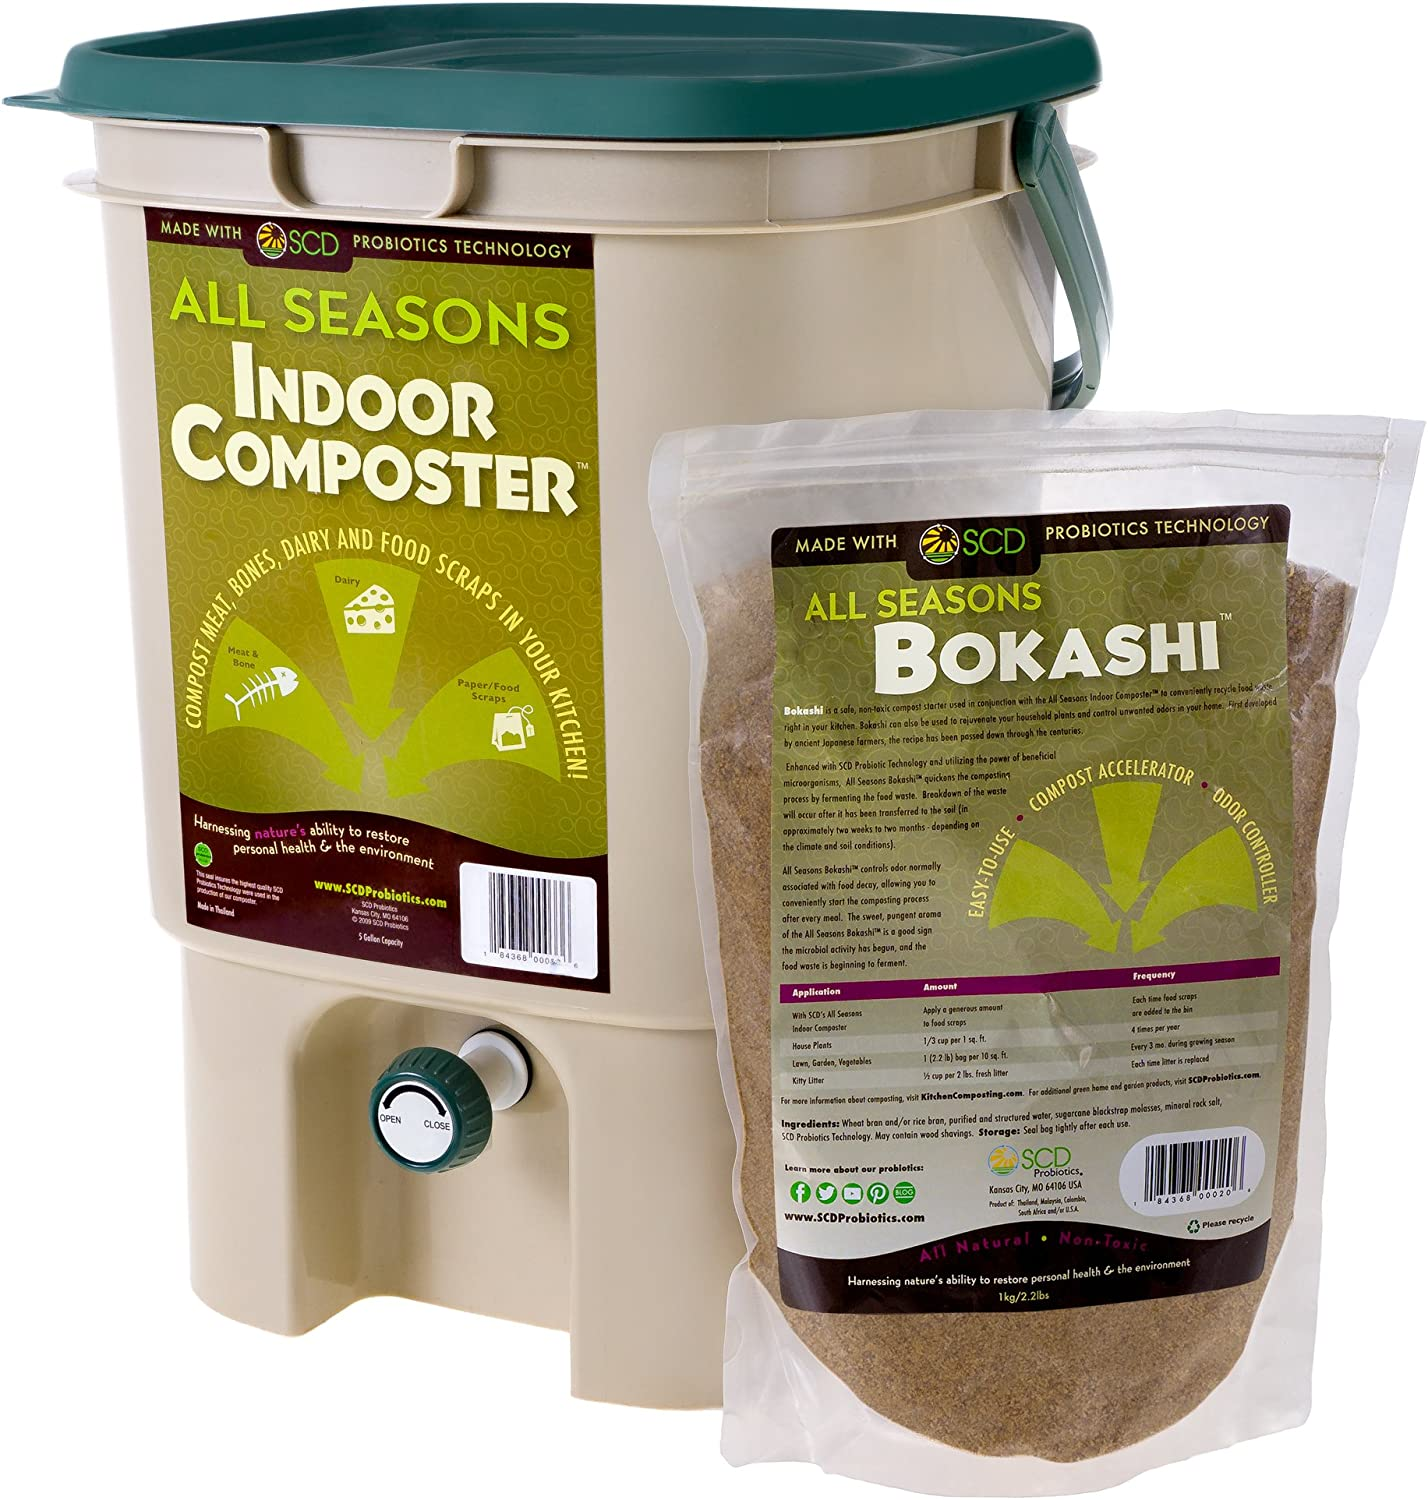 SCD Probiotics All Seasons Indoor Composter, Easy Start Countertop Kitchen Compost Bin with Bokashi - Easily Compost Indoors, Low Odor, Beginner Friendly - K100 Tan, 5 gal